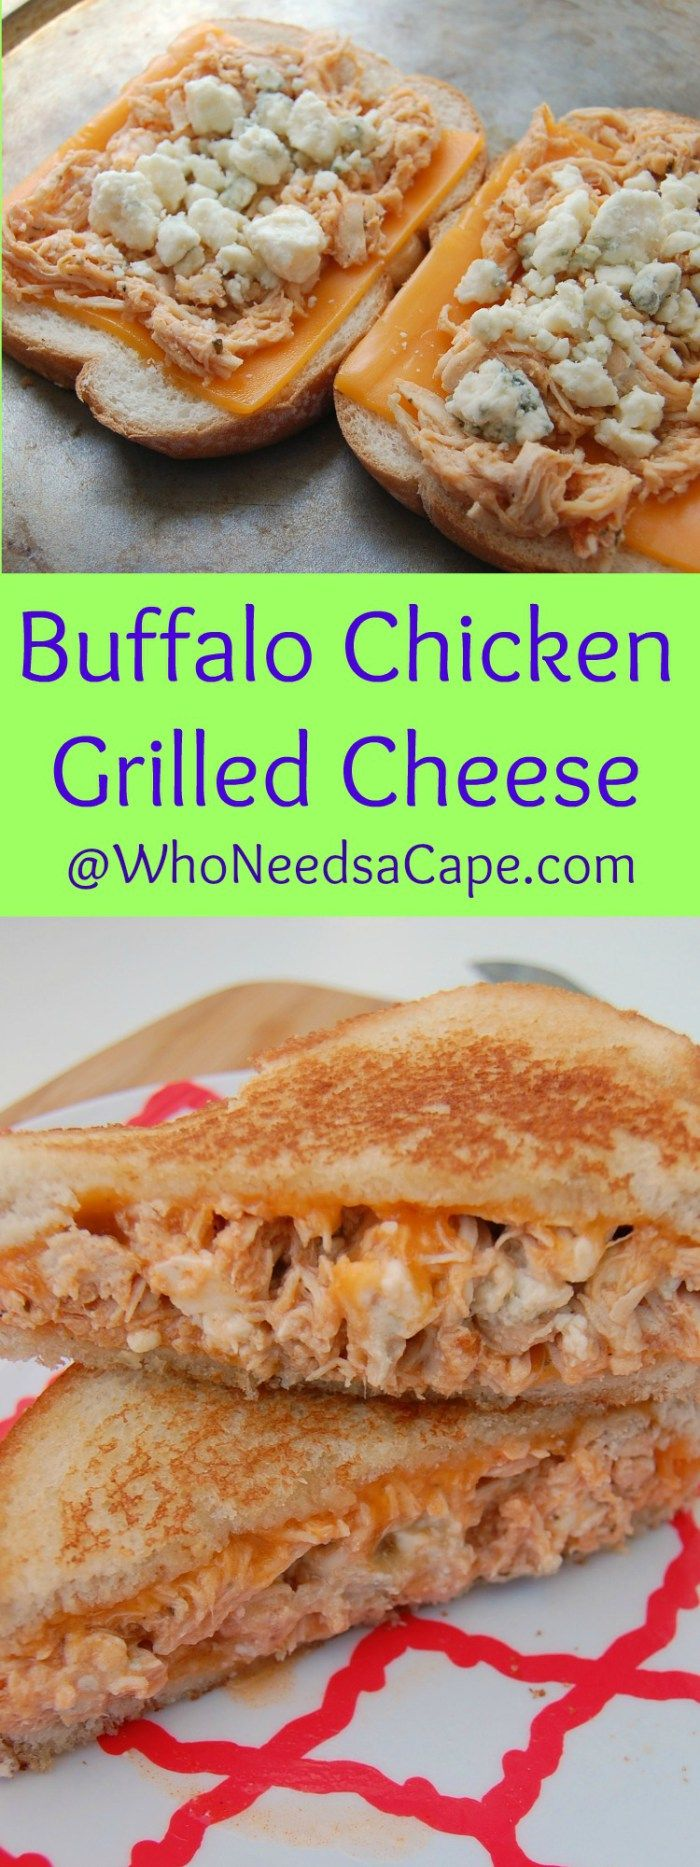 17 best ideas about delicious food on pinterest parmesan for Buffalo chicken sandwich recipe grilled